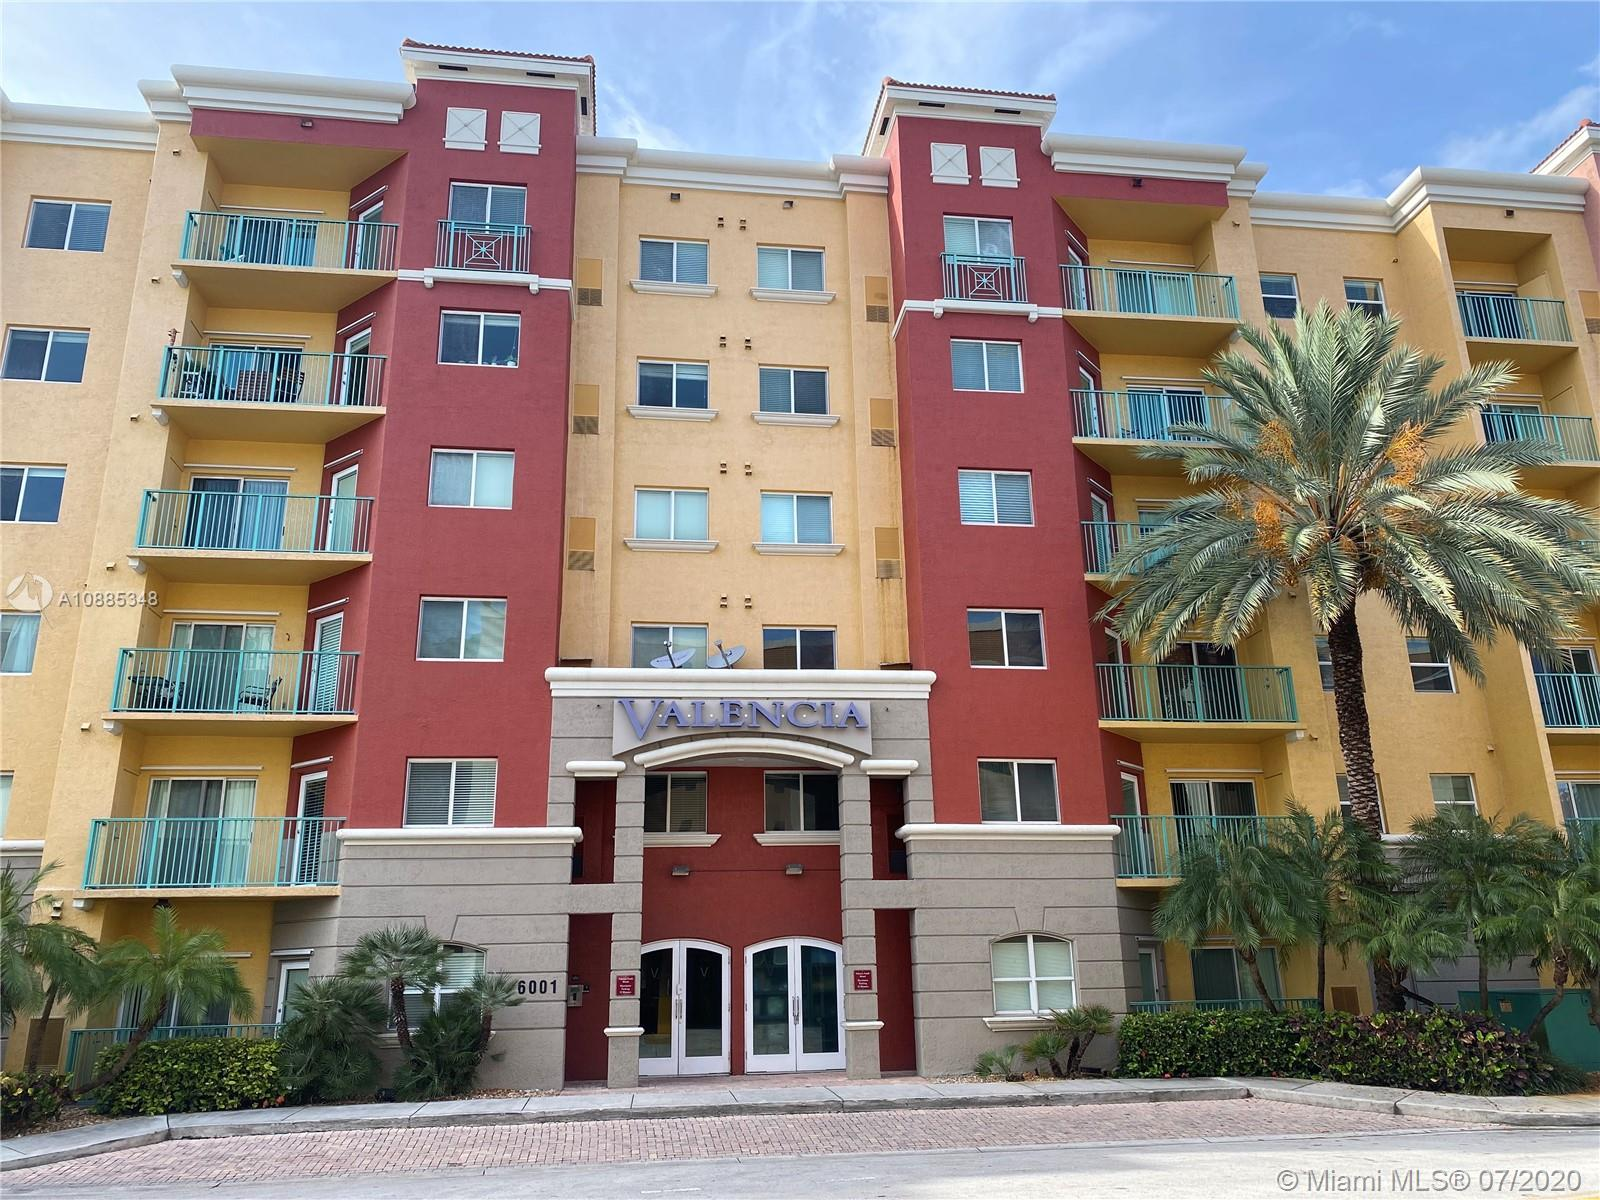 6001 SW 70th St #549 For Sale A10885348, FL